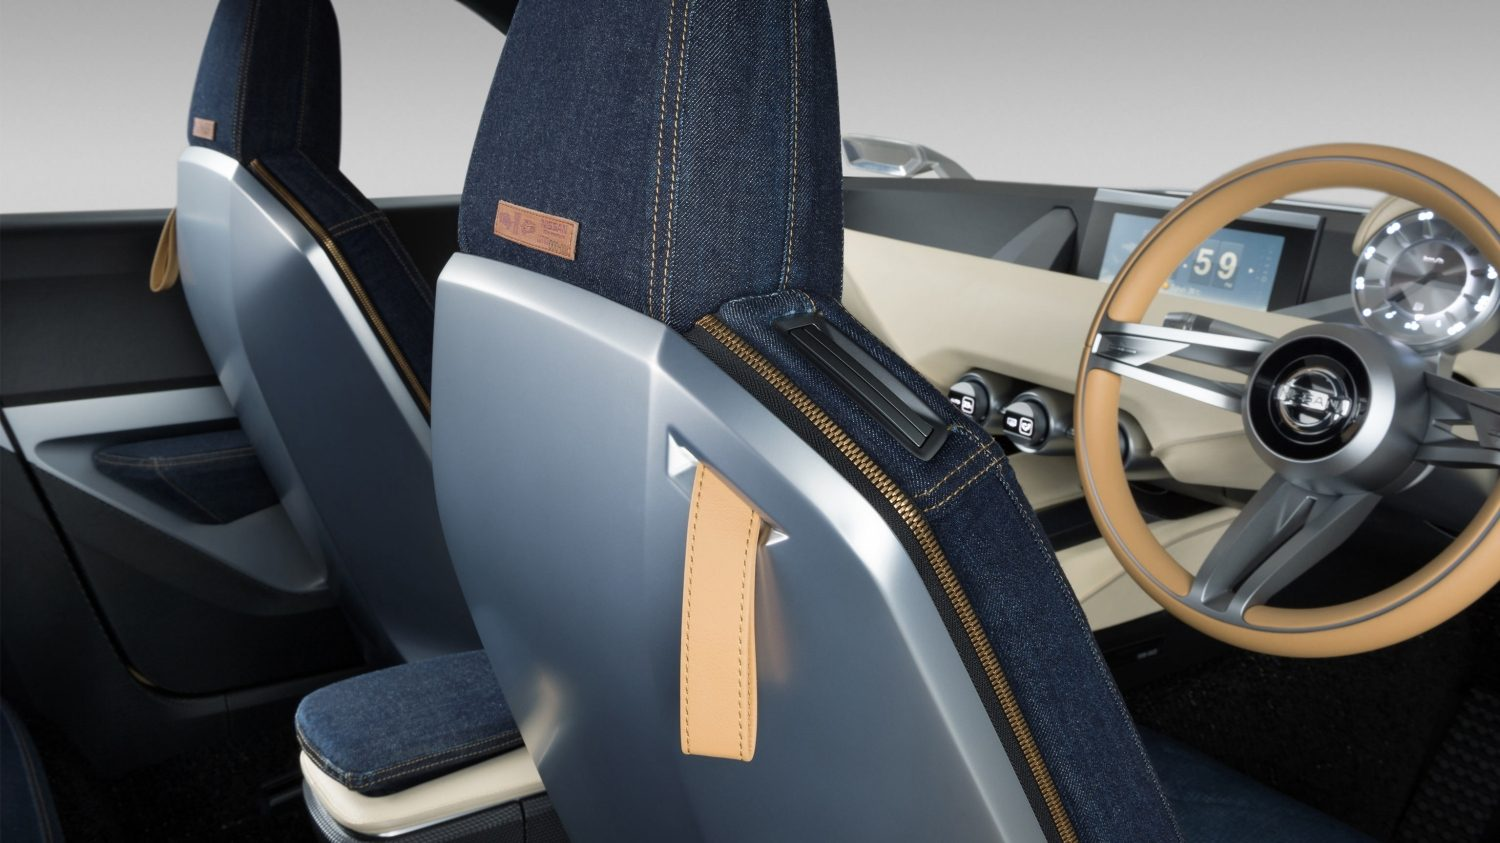 Nissan IDX Freeflow Concept denim upholstery seats